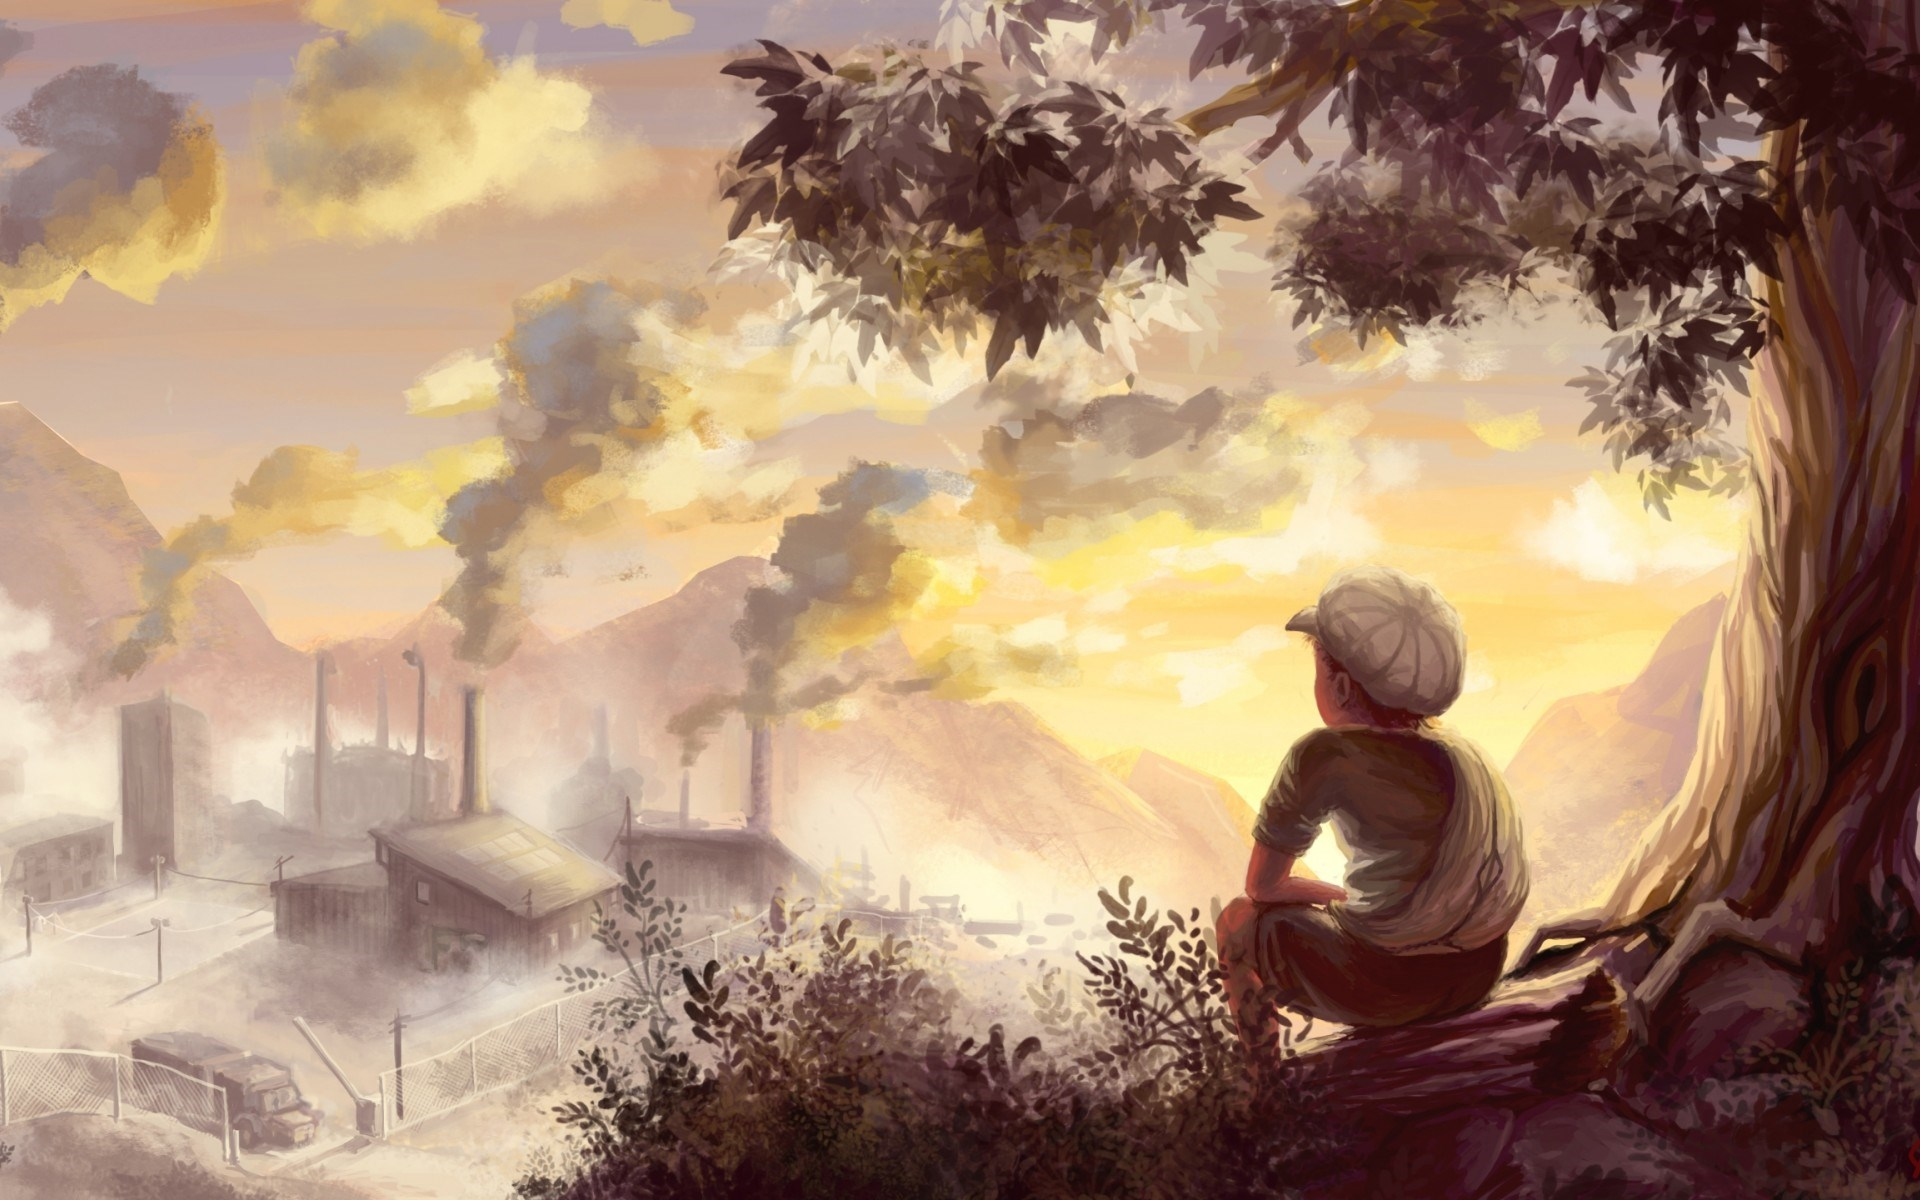 Landscape Color Drawing HD Wallpaper | Wallpapers ...